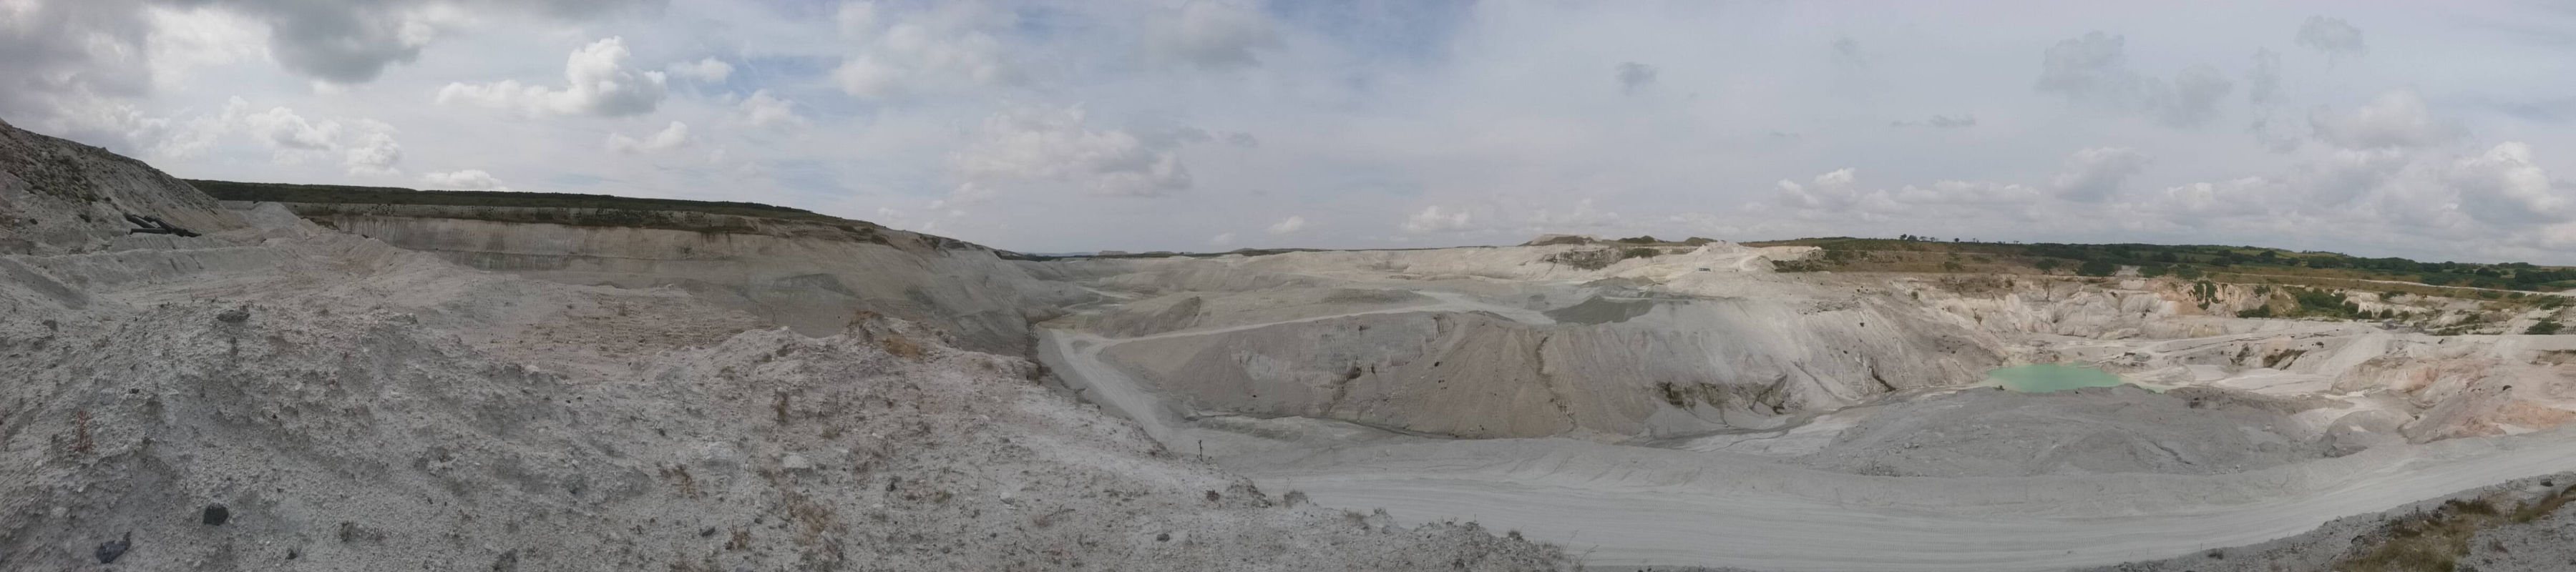 Panorama at Headon & Hemerdon quarries